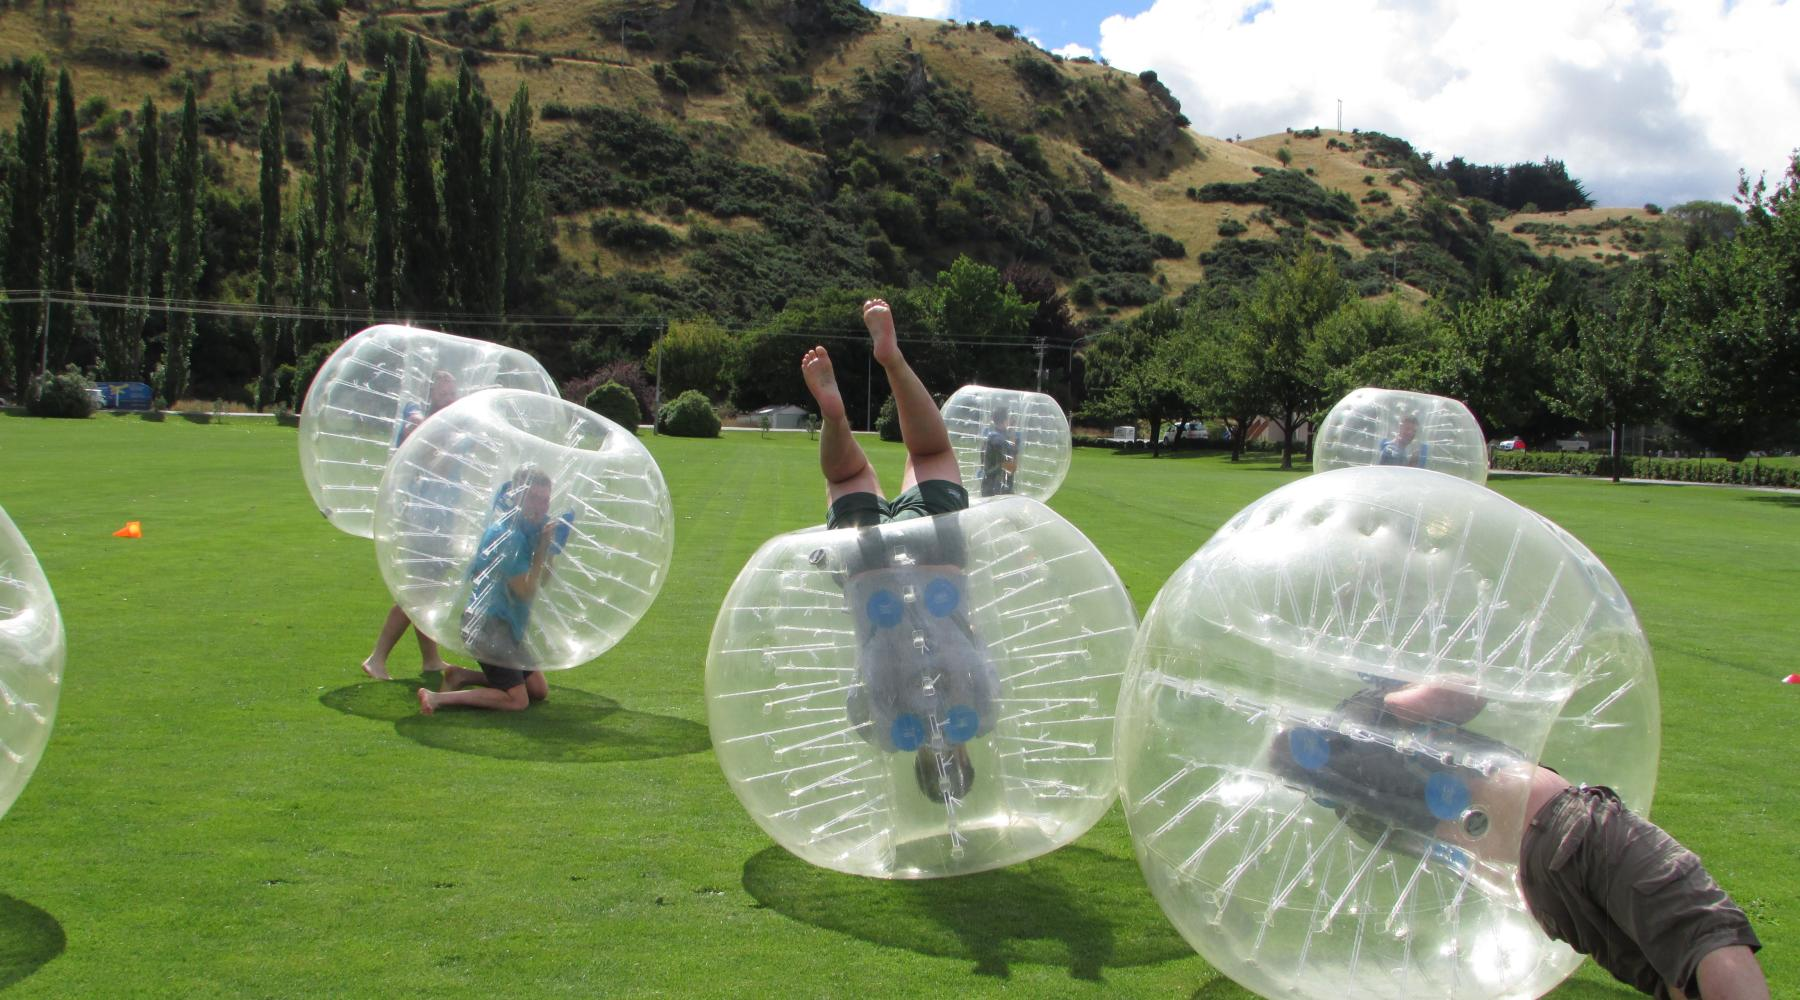 Bubble Soccer at The Playground